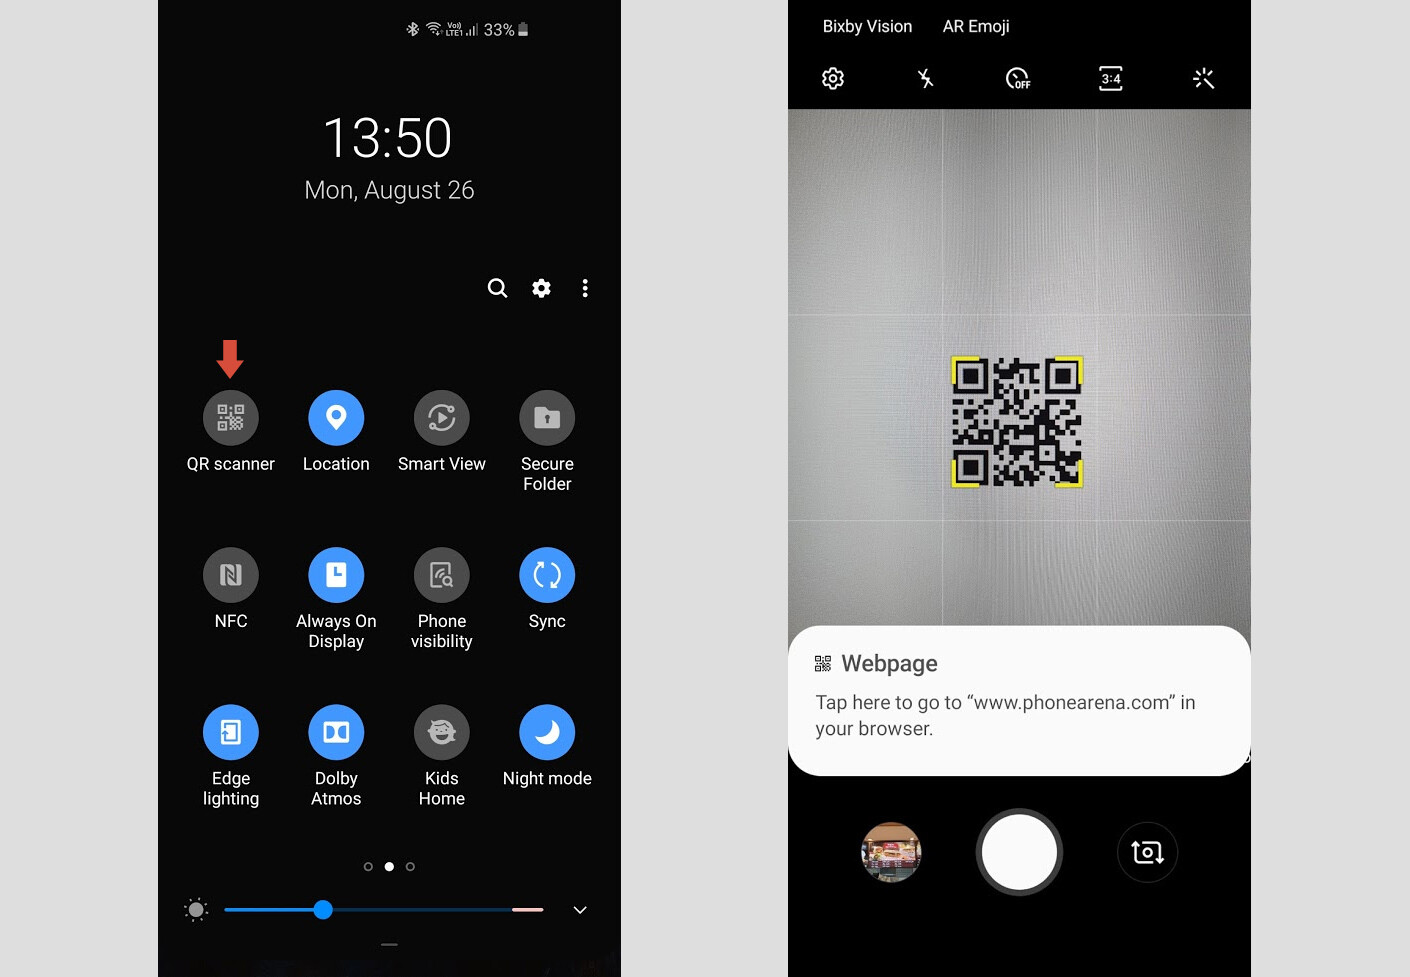 How to scan QR codes and barcodes on iPhone and Android